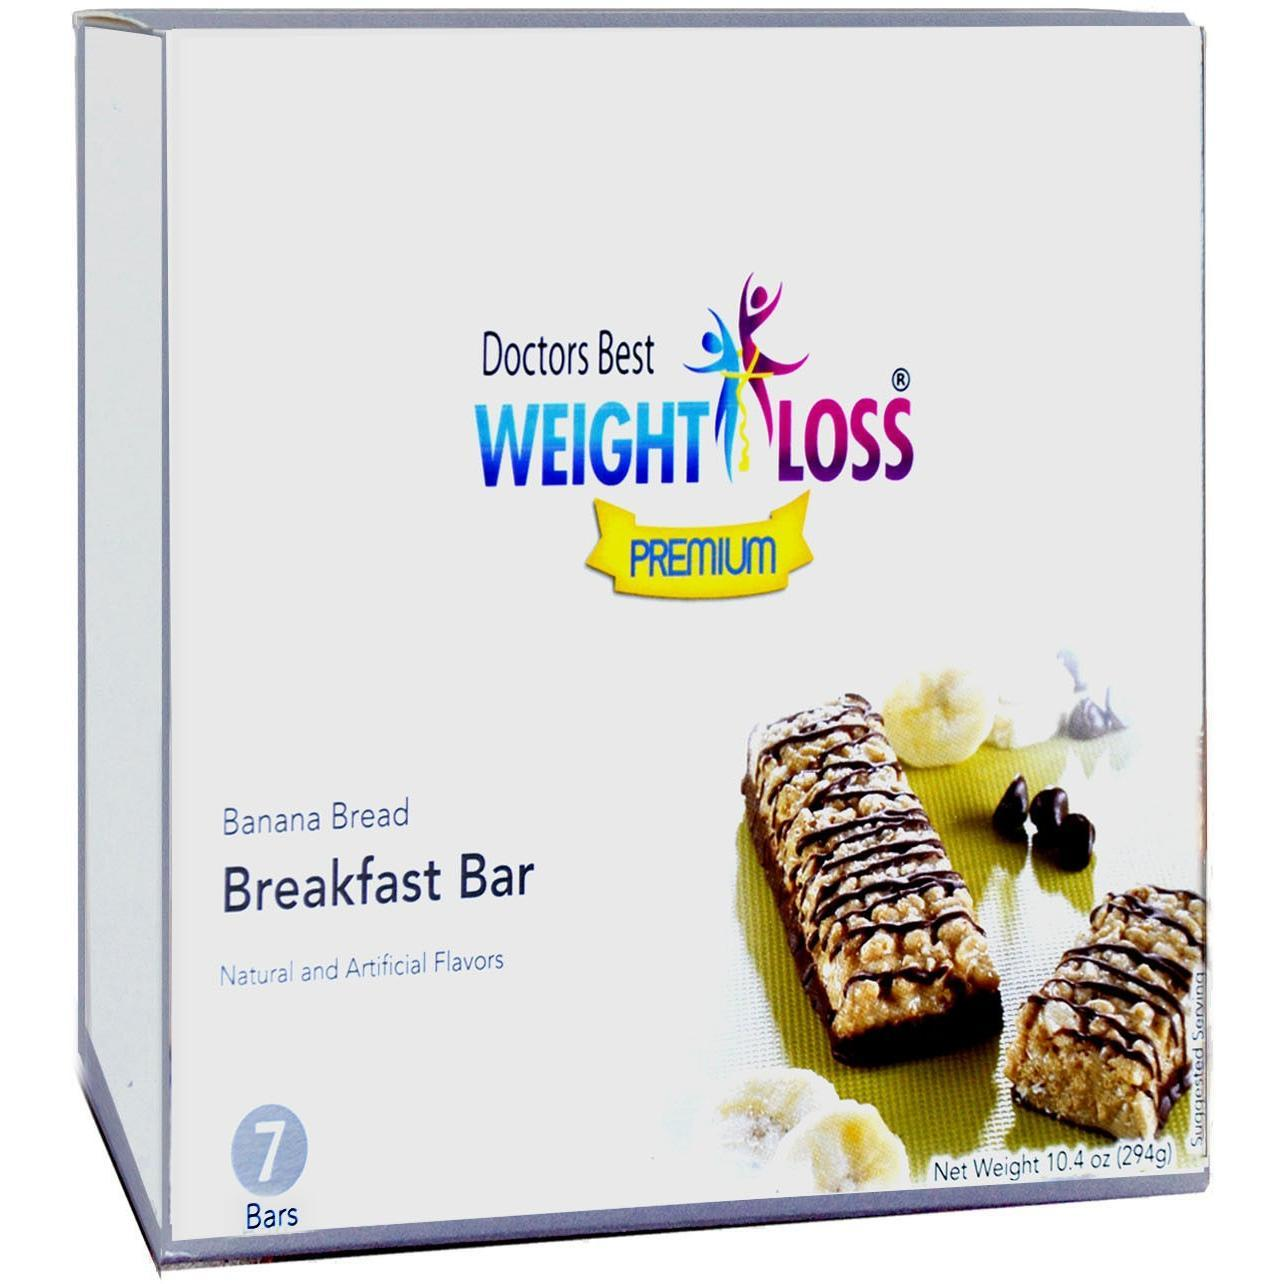 Doctors Best Weight Loss Premium - High Protein Diet Breakfast Bar |Banana Bread| Low Calorie, Low Sugar, High in Fiber (7/Box)